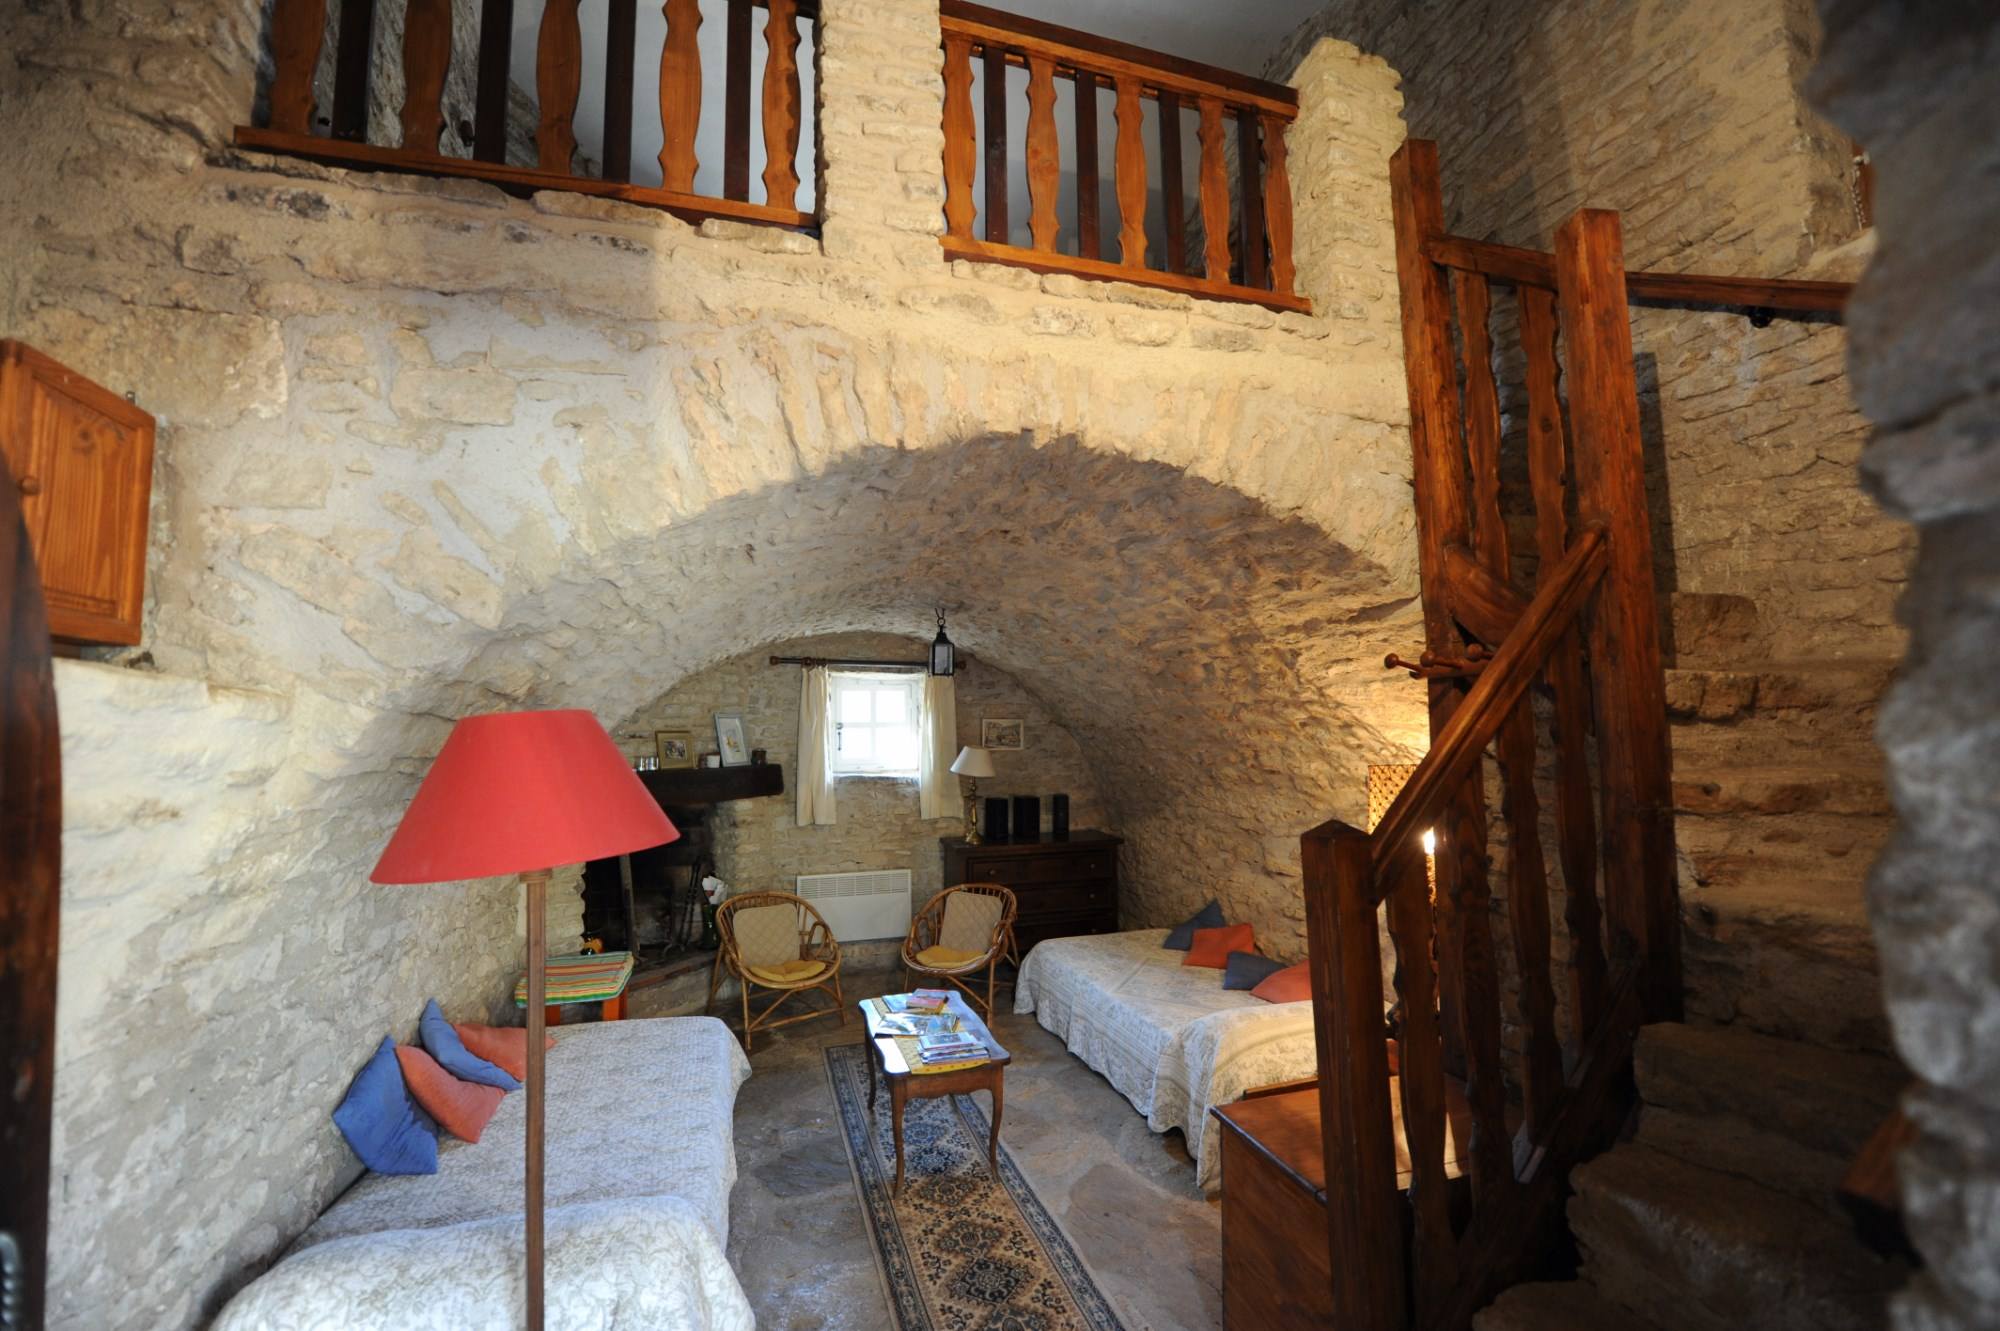 ventes en luberon vendre ferme ancienne fortifi e restaurer sur 35 hectares avec piscine. Black Bedroom Furniture Sets. Home Design Ideas